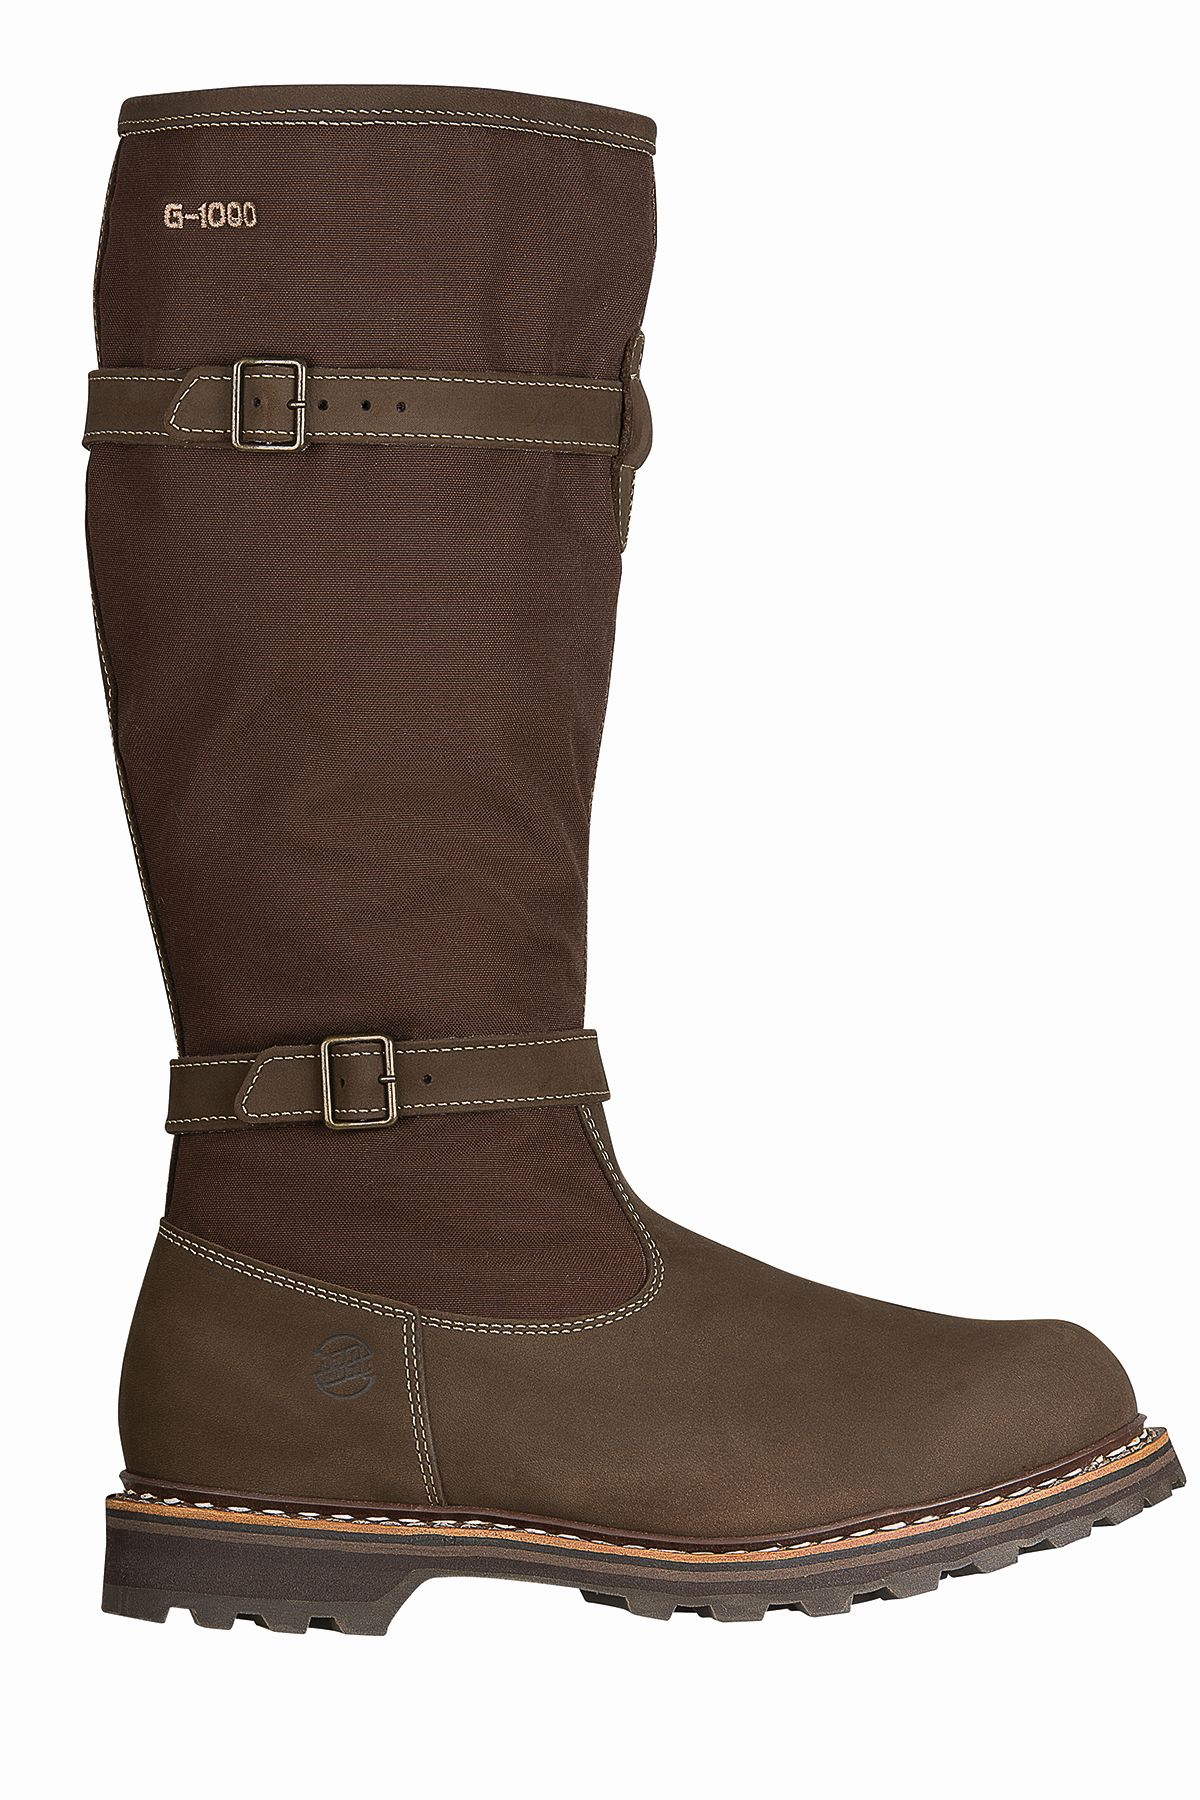 Hanwag Hjort Brown-30